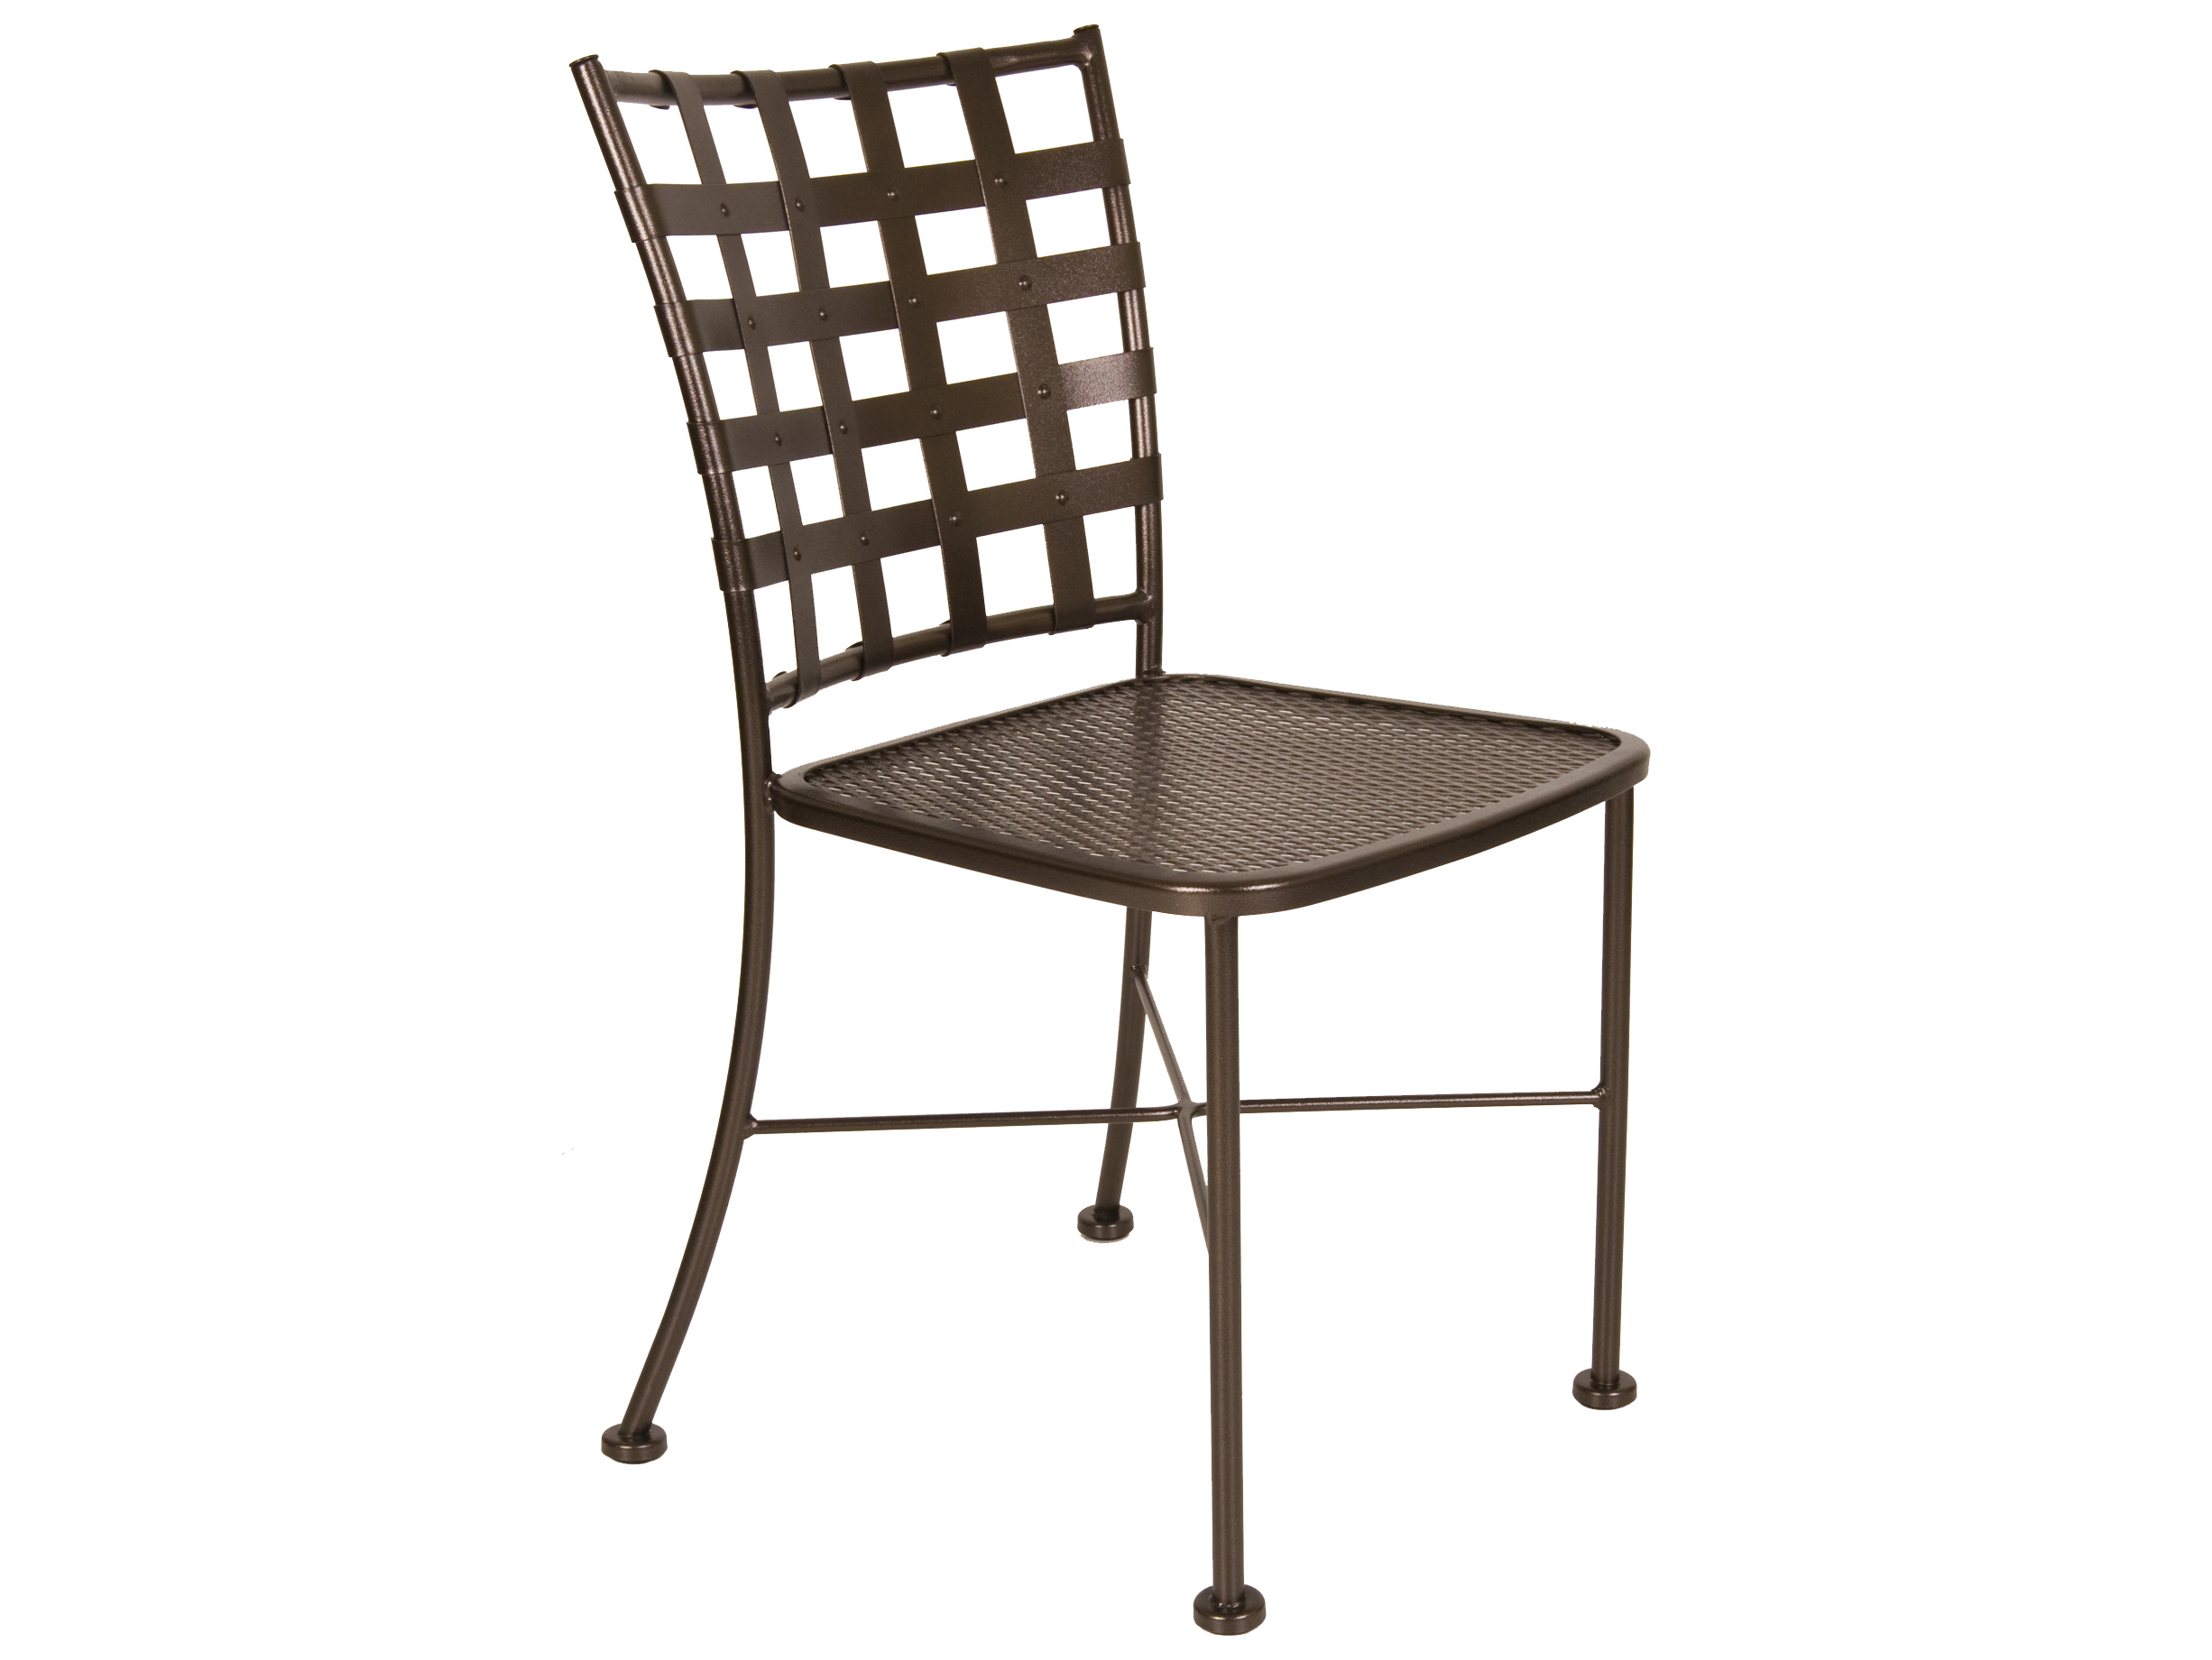 Ow Lee Casa Wrought Iron Dining Chair 707 S